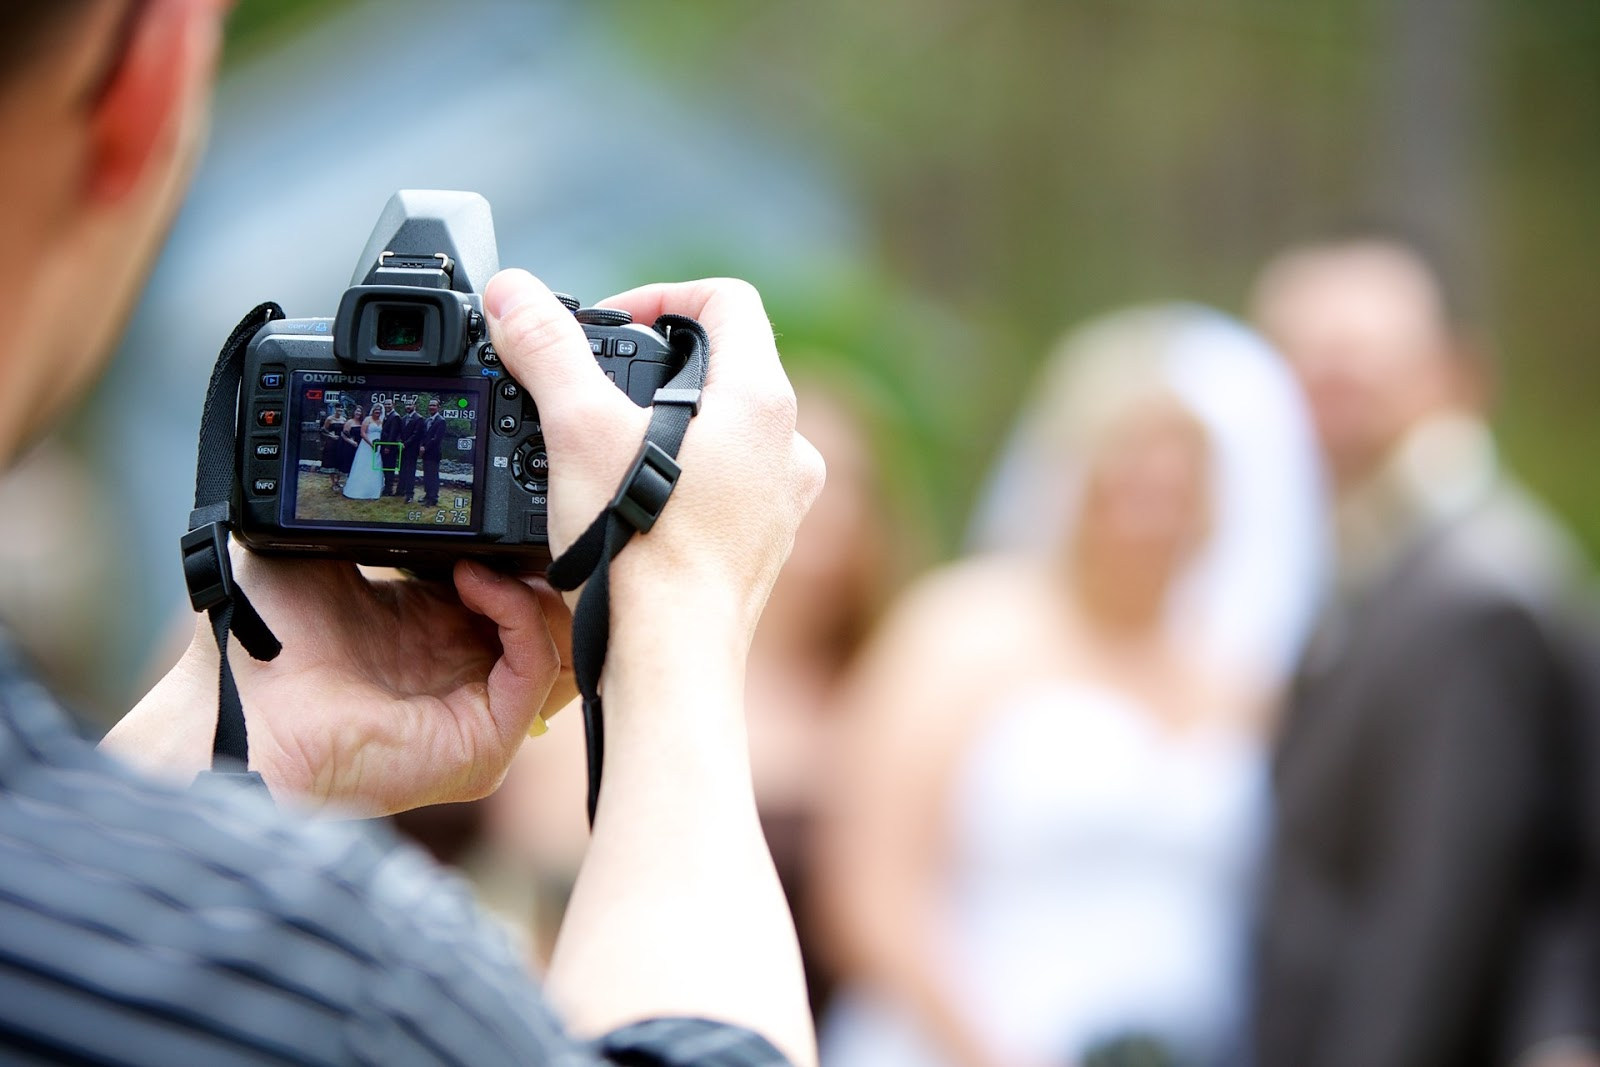 Work From Home Jobs: HOW TO CHOOSE YOUR PERFECT WEDDING PHOTOGRAPHER